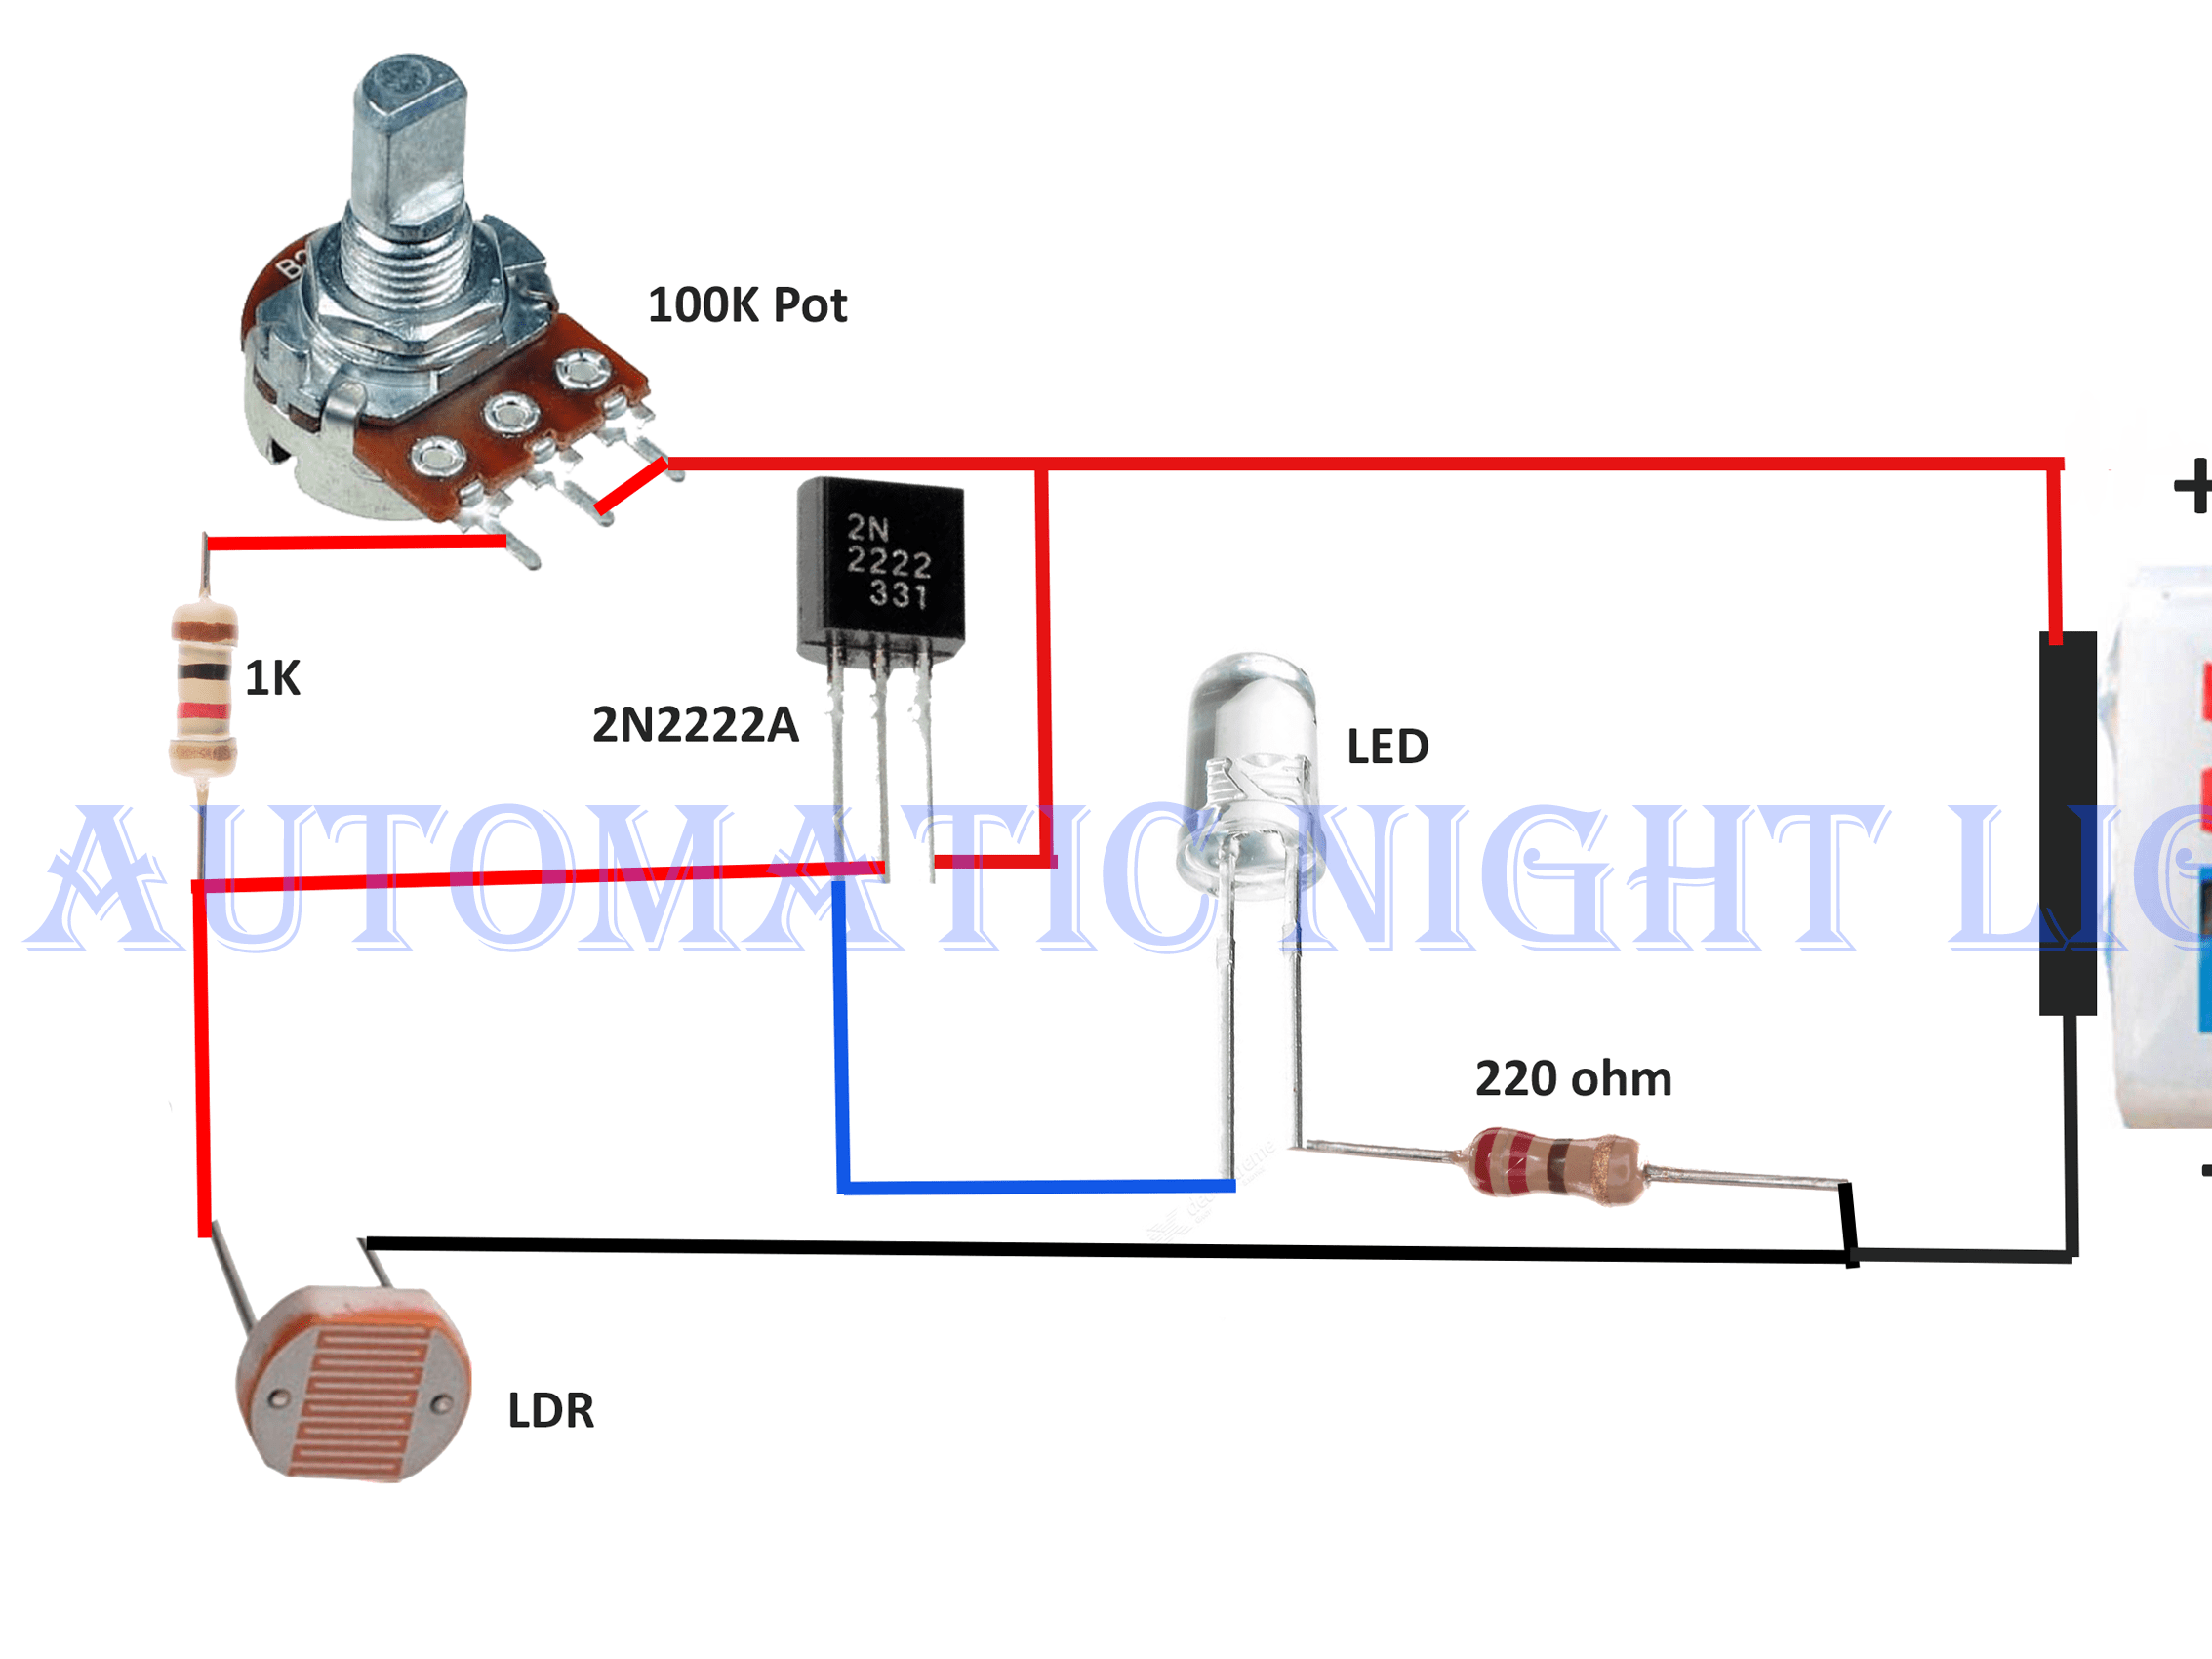 automatic night lamp with ldr hackster io 9v led circuit diagram flashing led circuit with ldrcircuit diagram [ 2267 x 1700 Pixel ]